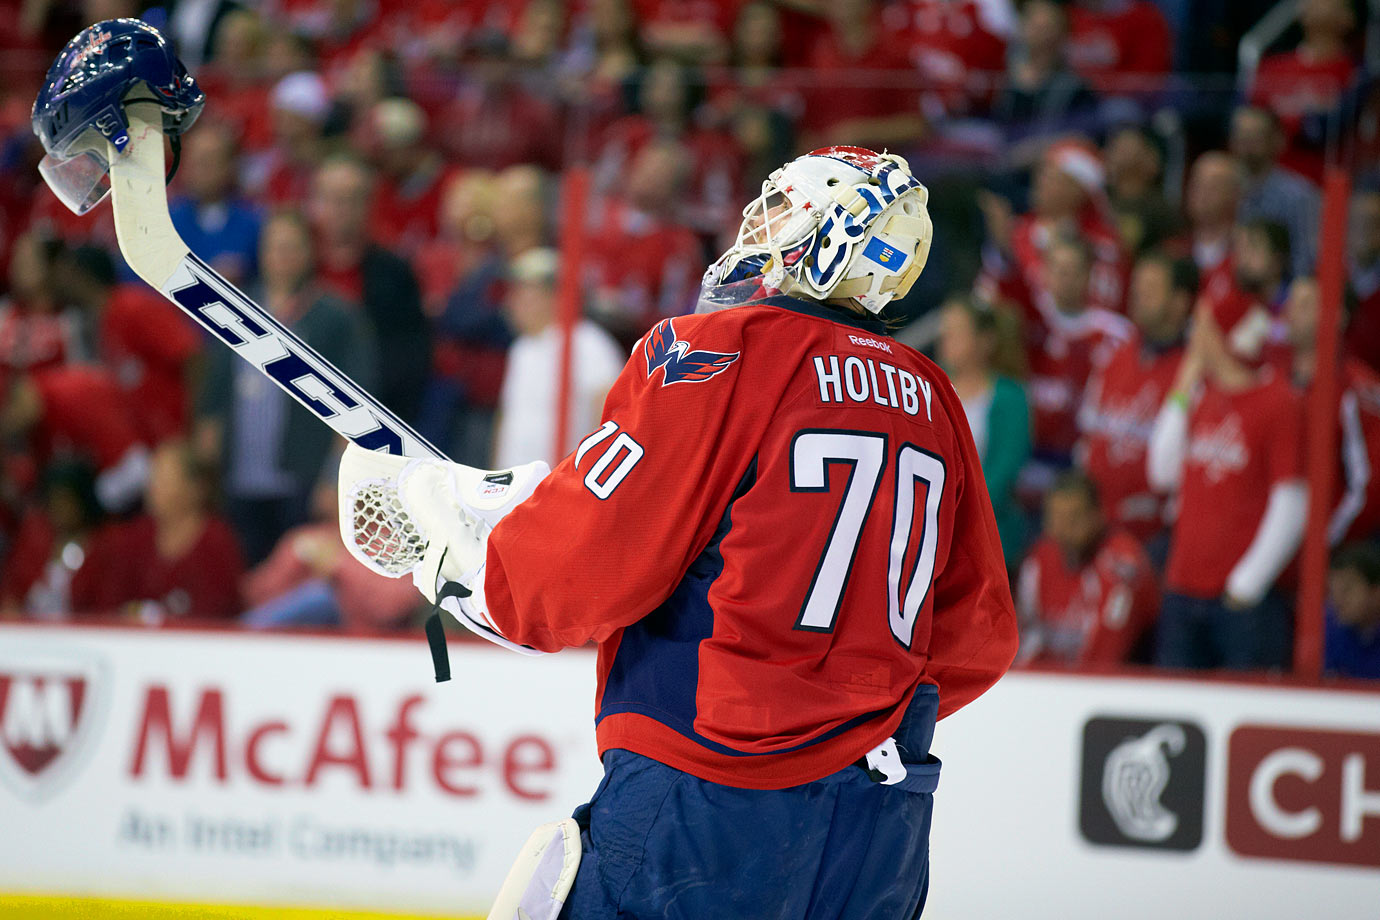 "Holtby is one of just 10 players in history to wear 70 because ""that's the number they gave me when I showed up."" He was in net for three shutouts against the Bruins in 2014-15, setting a new NHL mark."